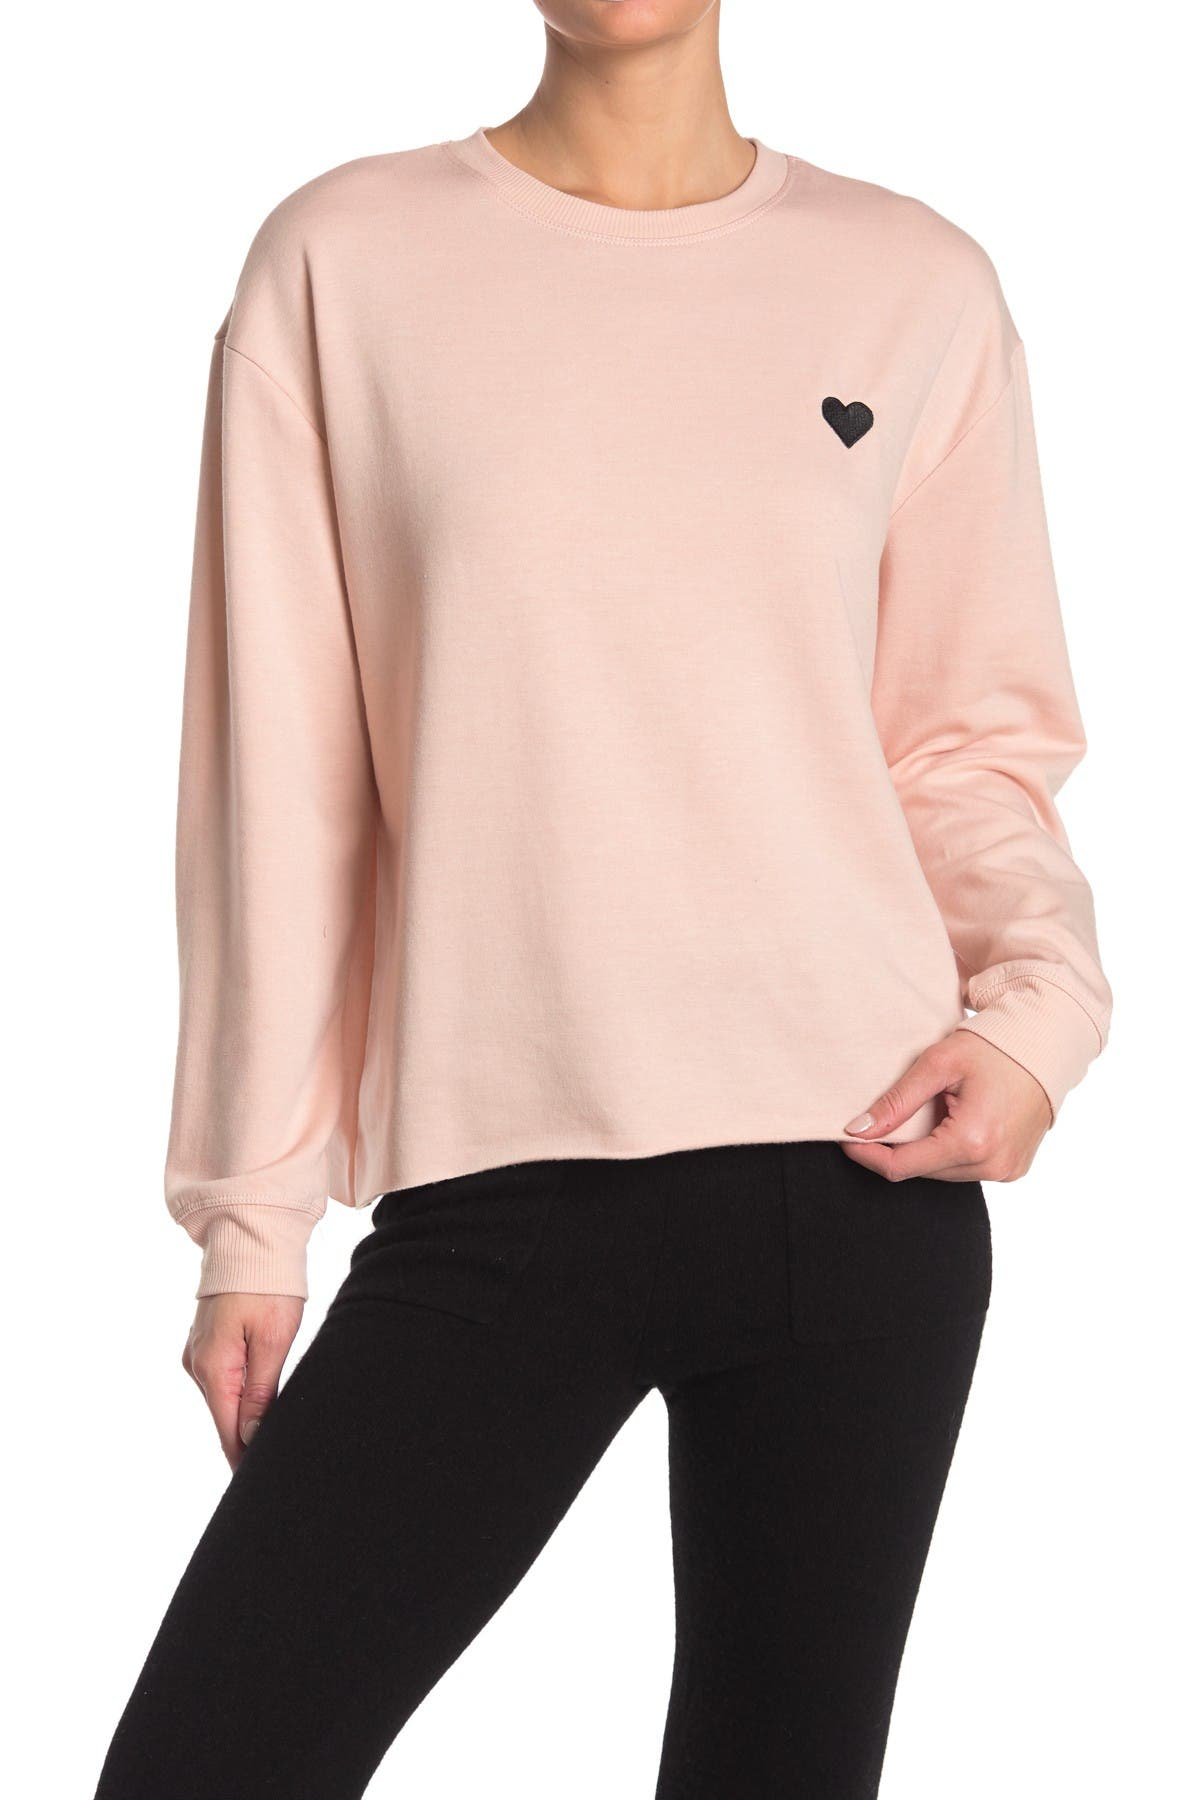 Image of C & C California Heart Graphic Knit Pullover